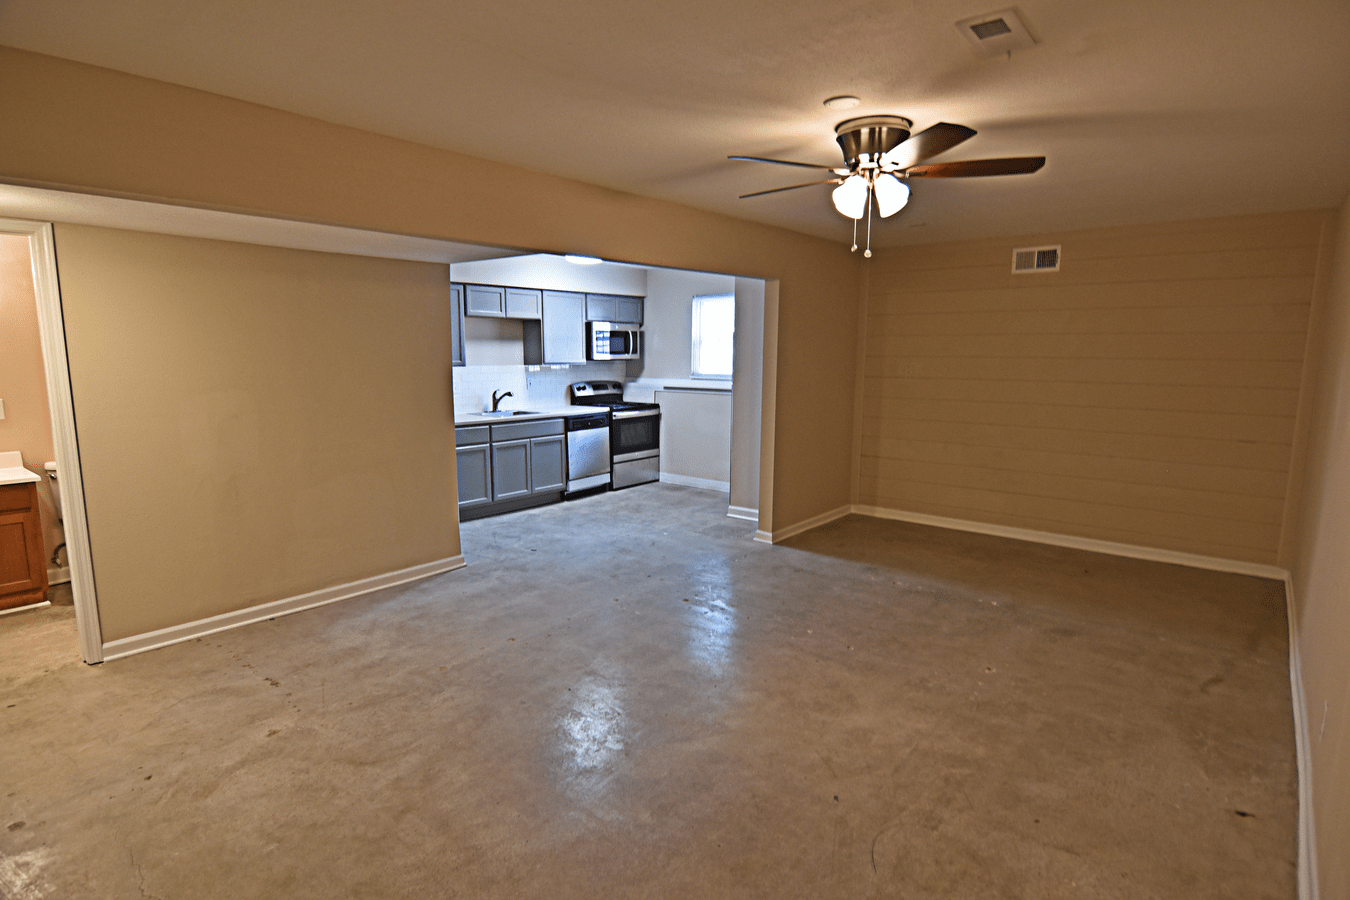 1 Bedroom 1 Bathroom Apartment for rent at Hemingway Heights in Kansas City, MO